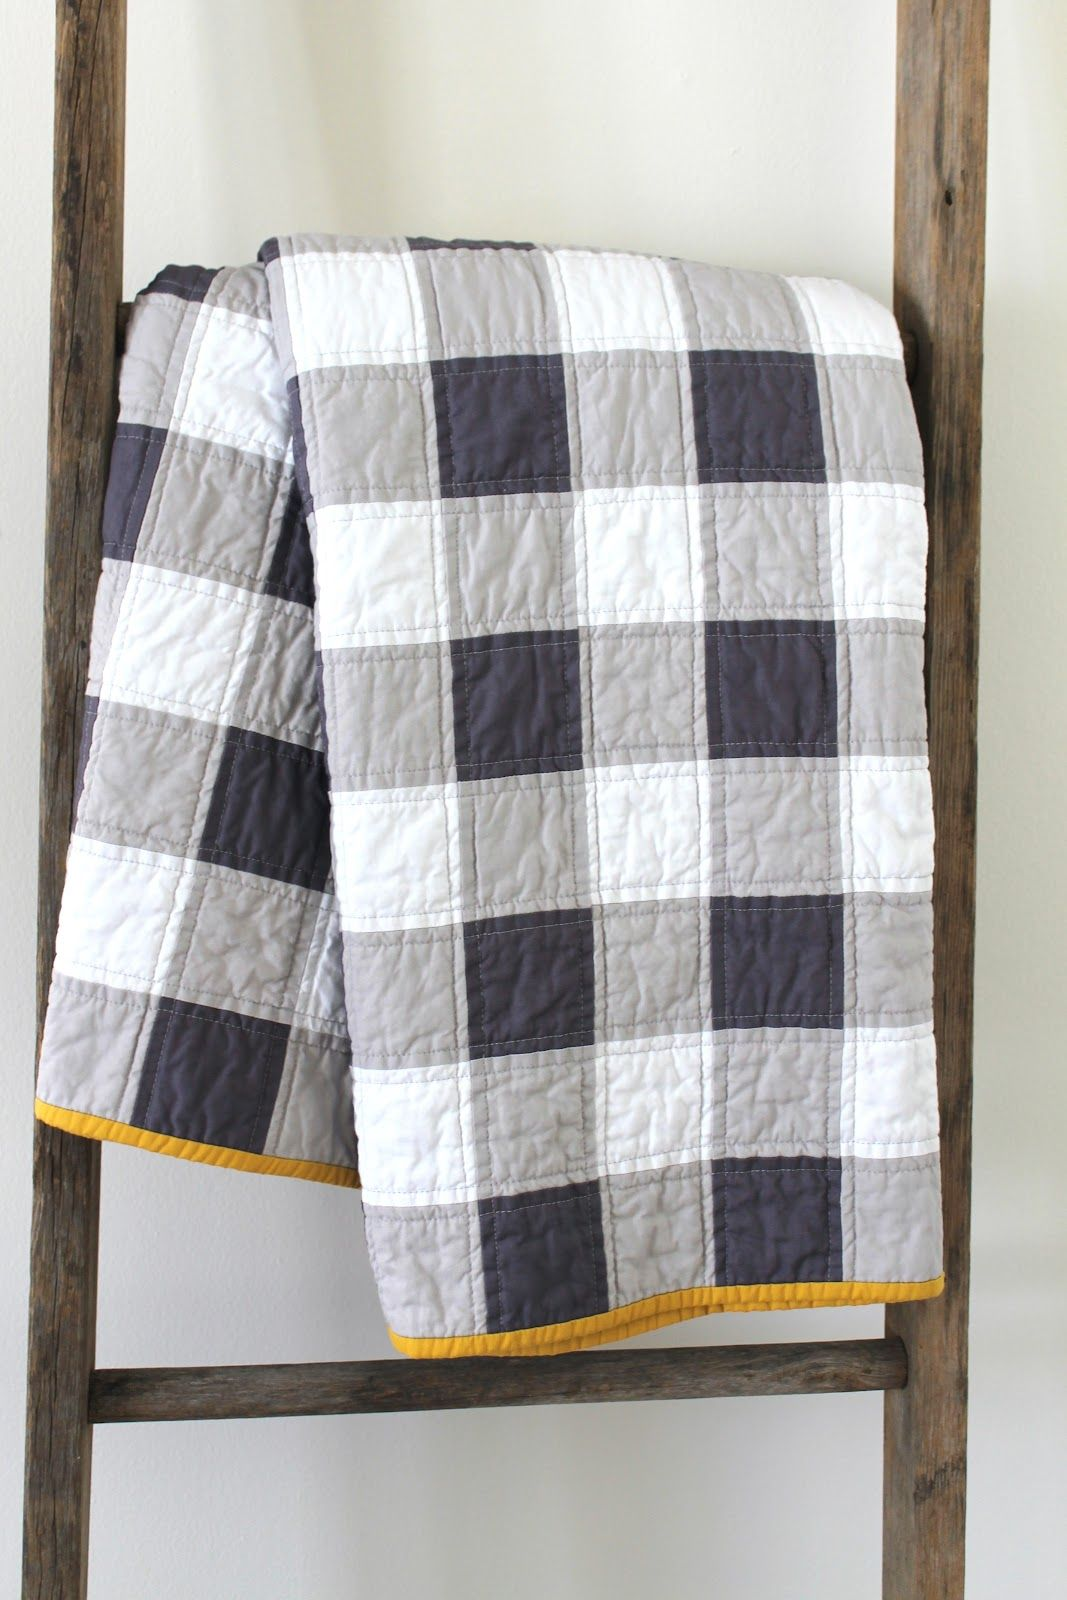 Piercing ideas for quilt backing  Gingham patchwork quilt  fun idea to create the gingham plaid